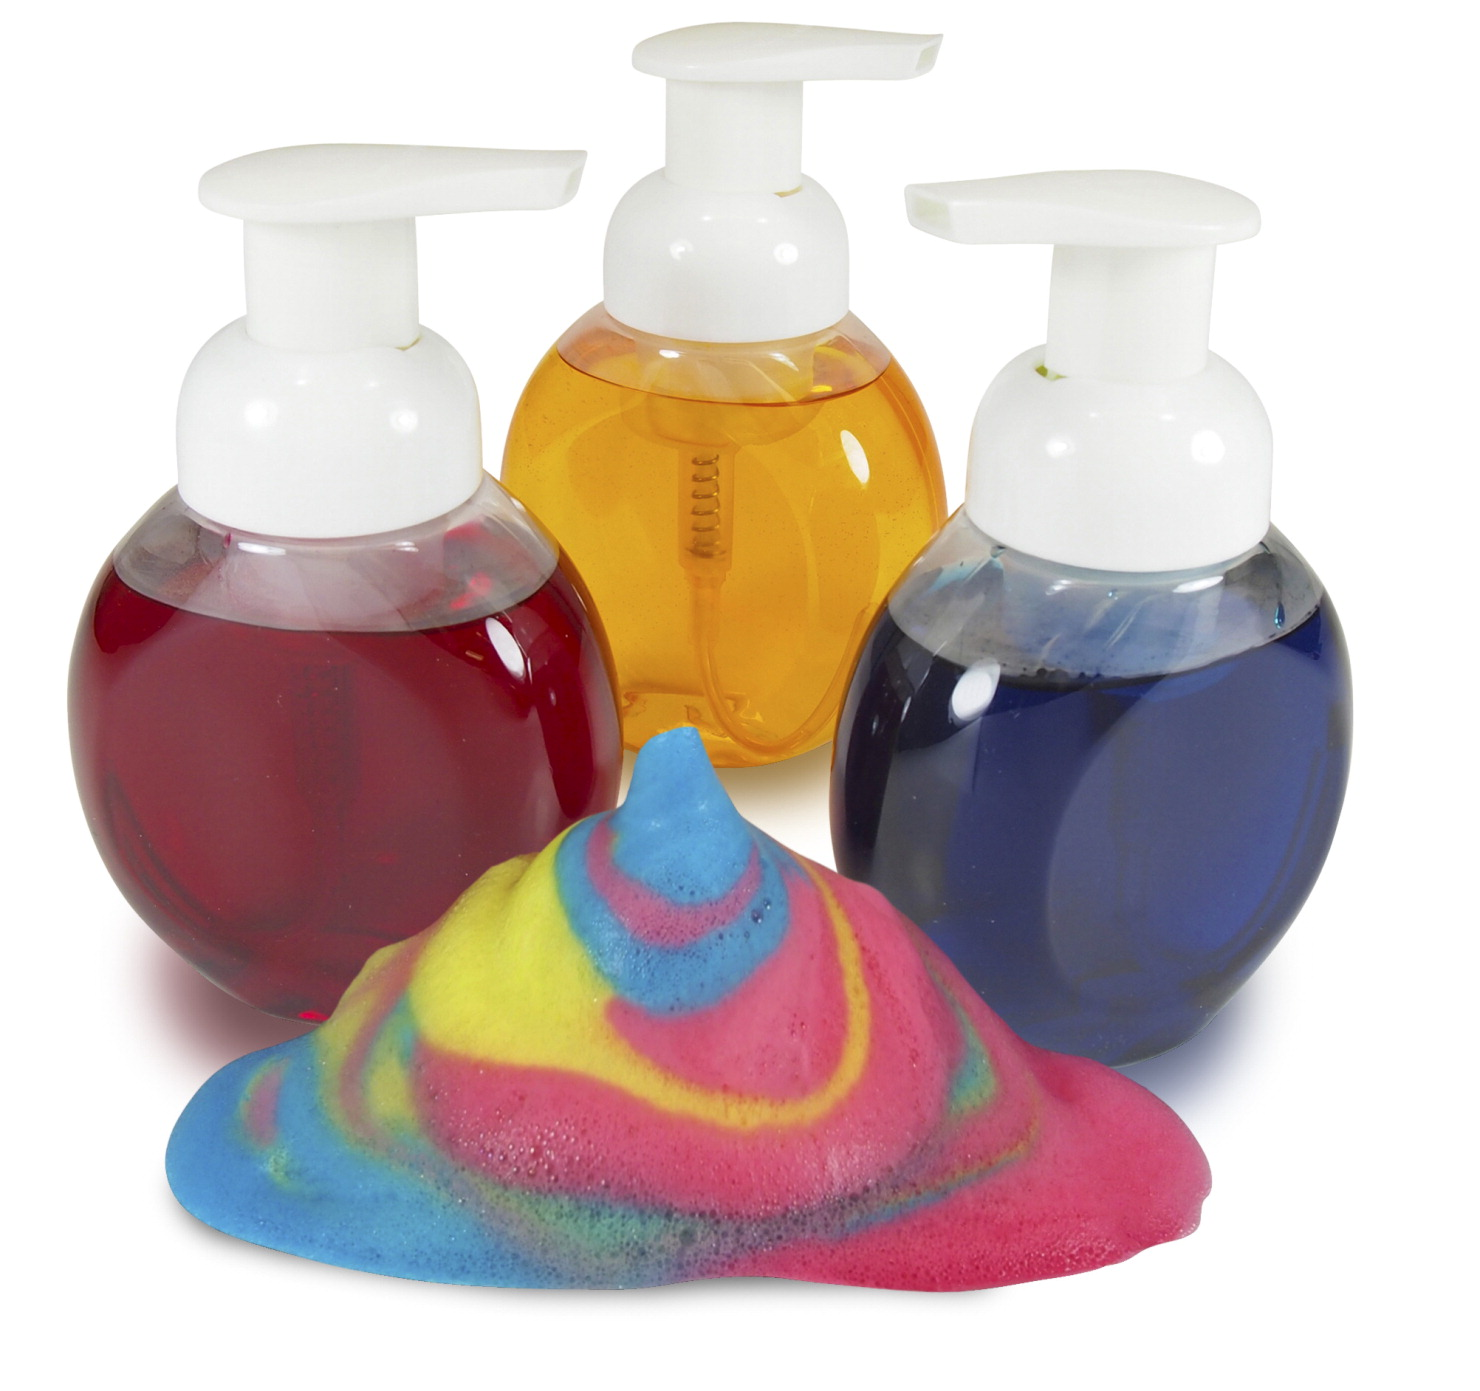 Roylco Foam Paint Bottles, Pack of 3